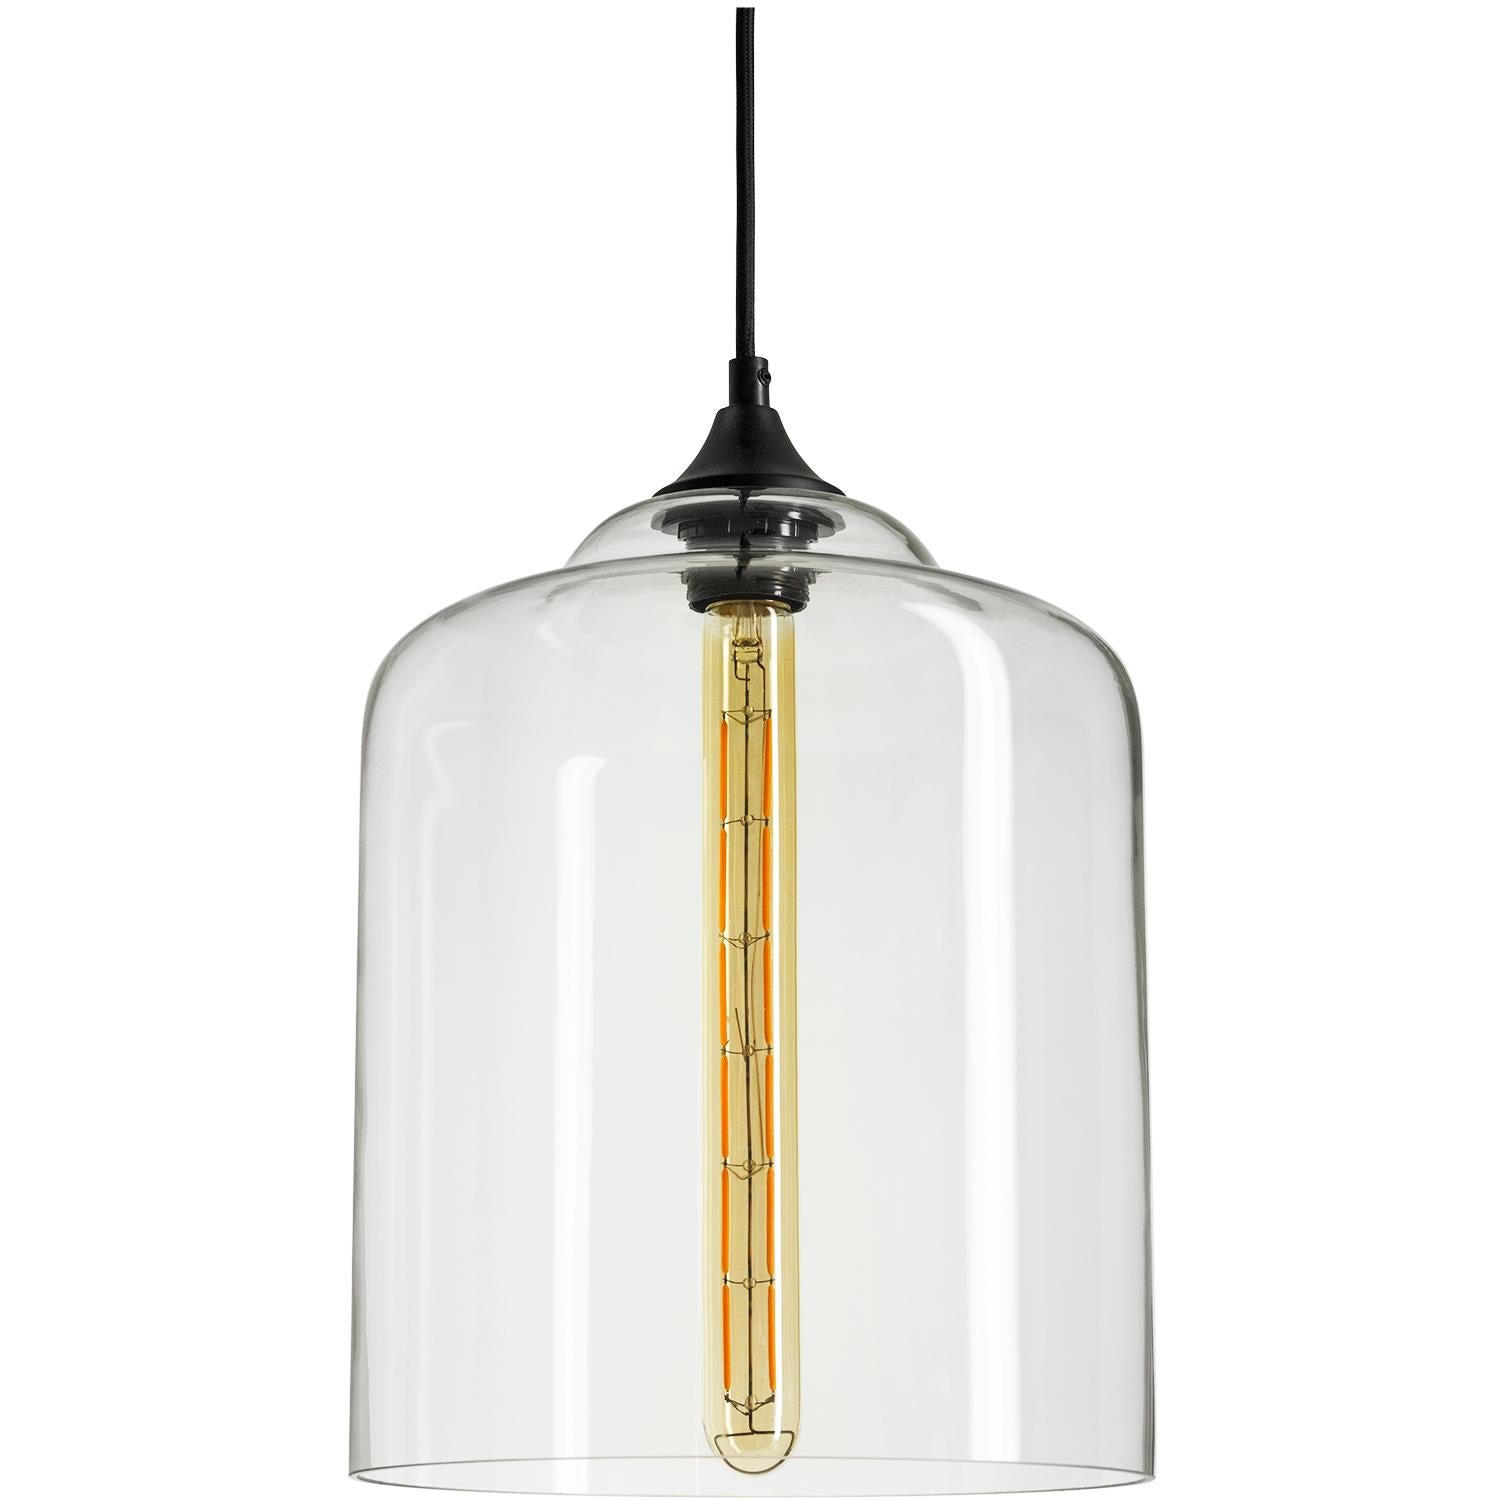 SUNLITE 07046-SU E26 Antique Style Crystal Glass Collection Black Pendant Light Fixture